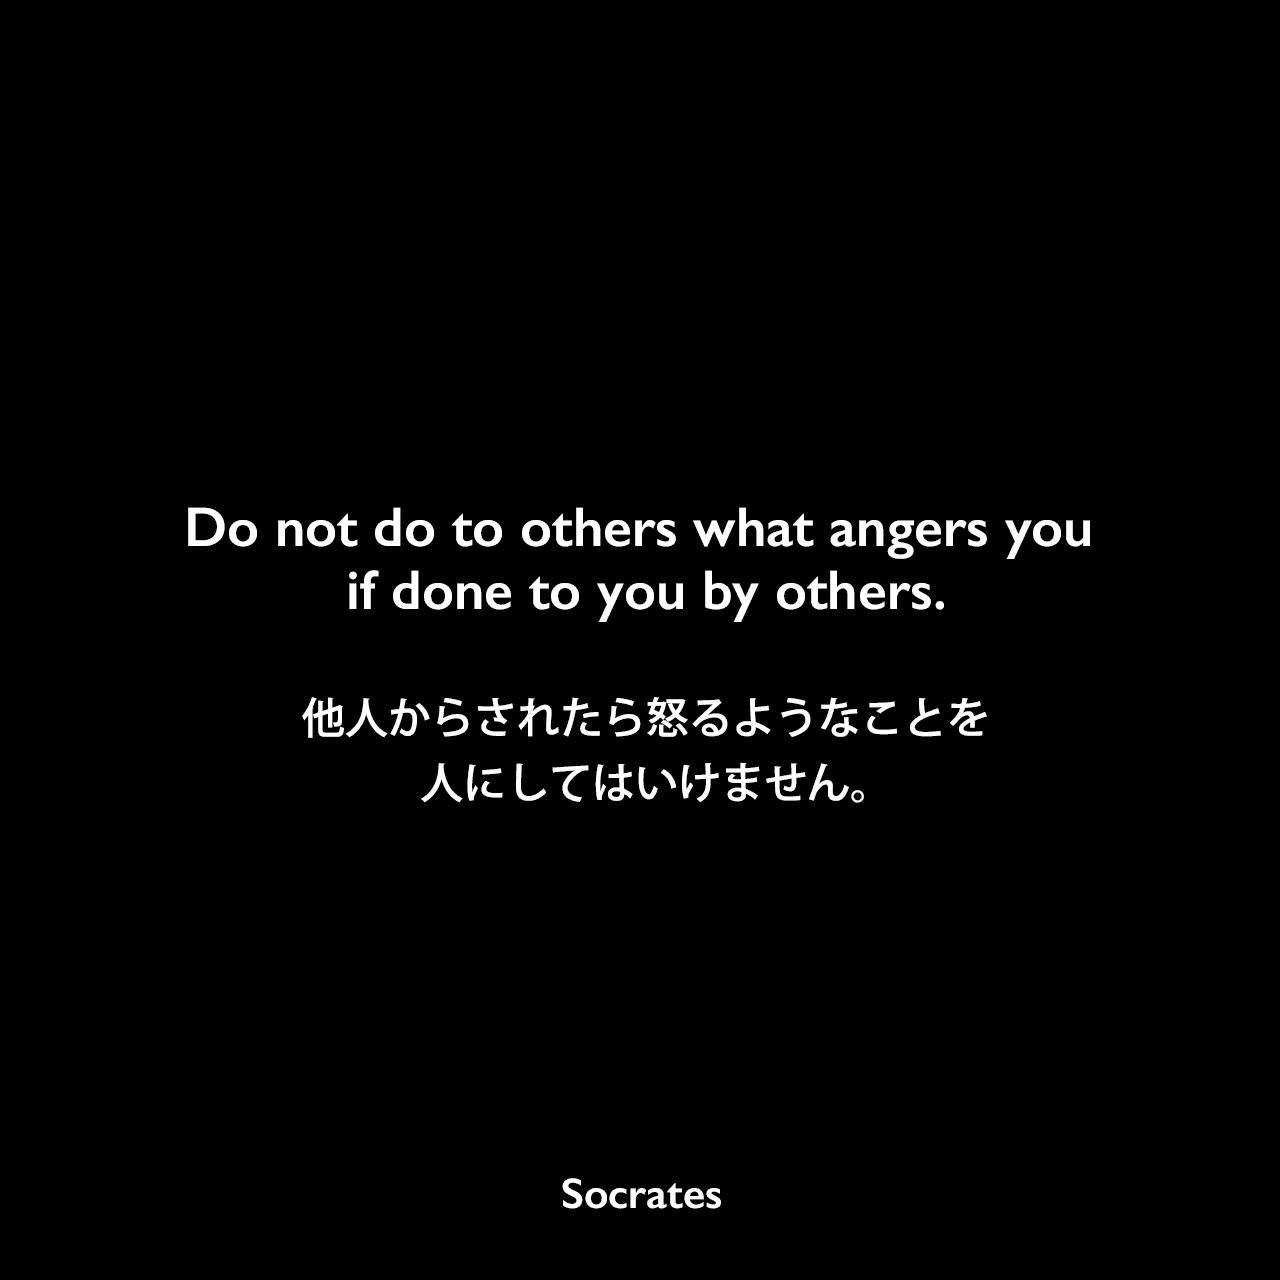 Do not do to others what angers you if done to you by others.他人からされたら怒るようなことを人にしてはいけません。Socrates